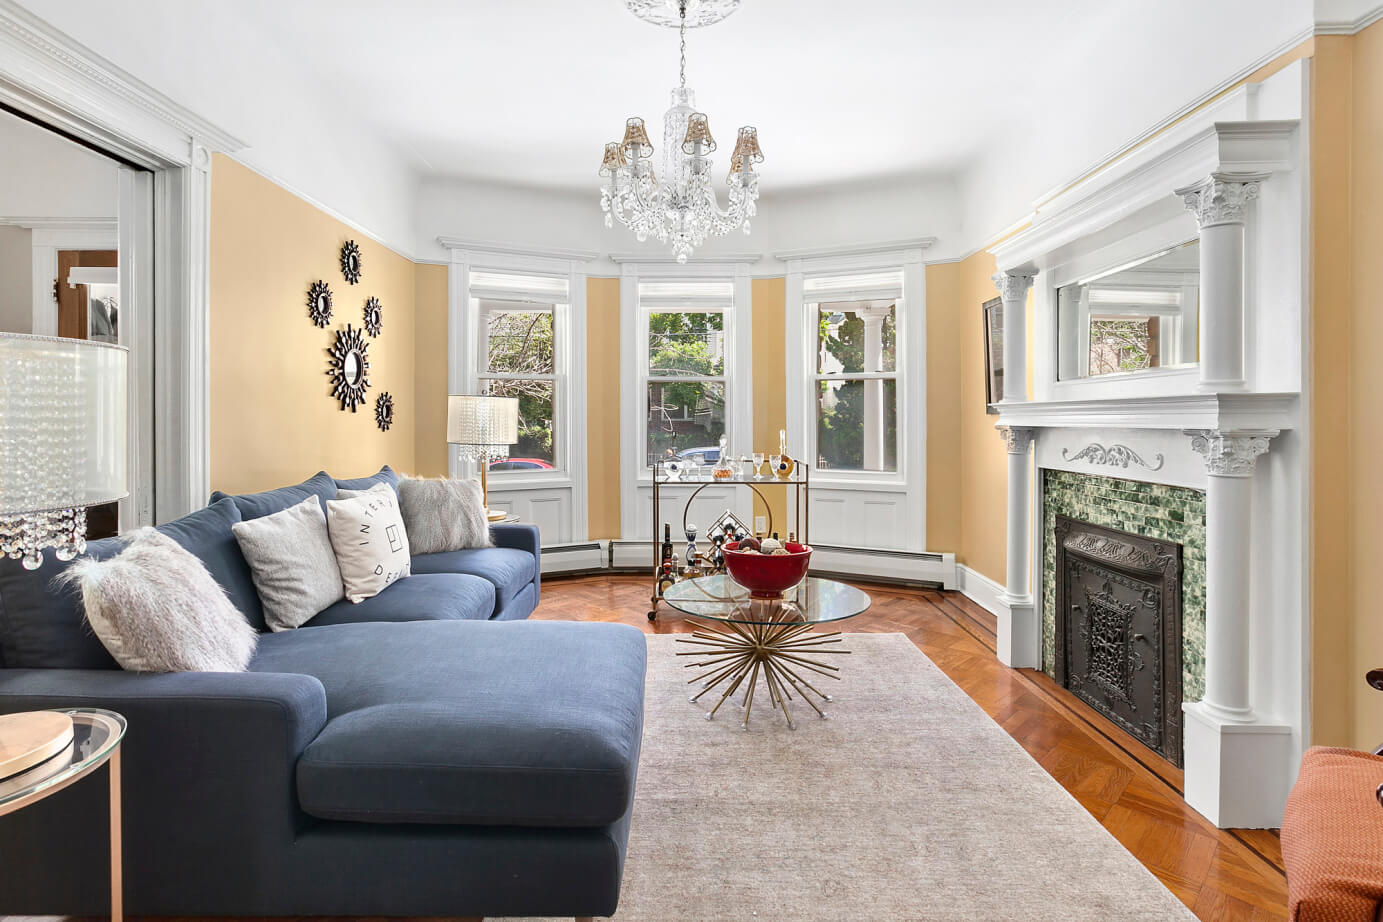 open houses near me today for sale